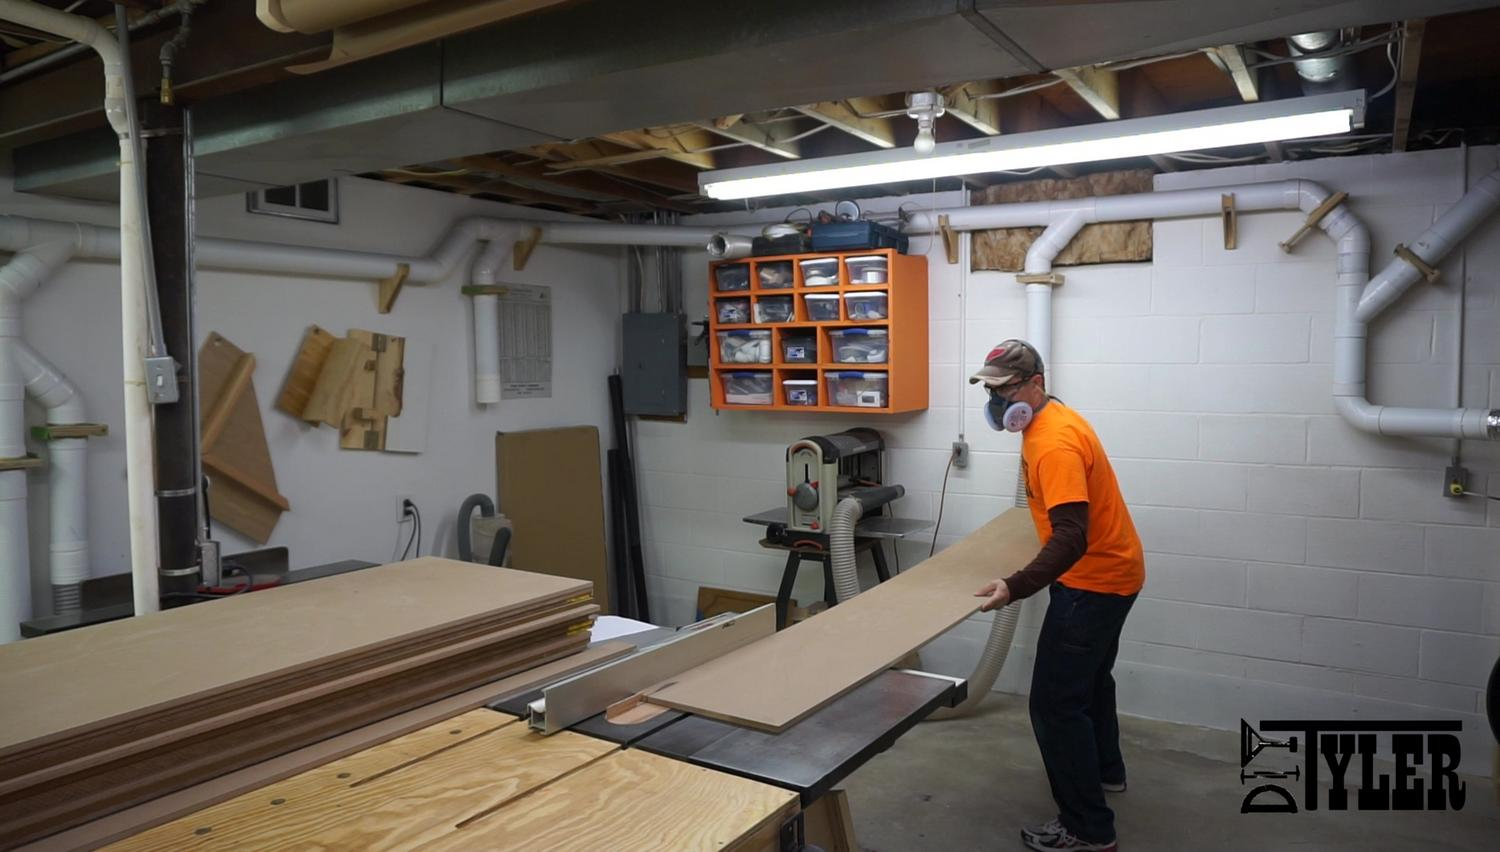 Lots of MDF cutting on the table saw